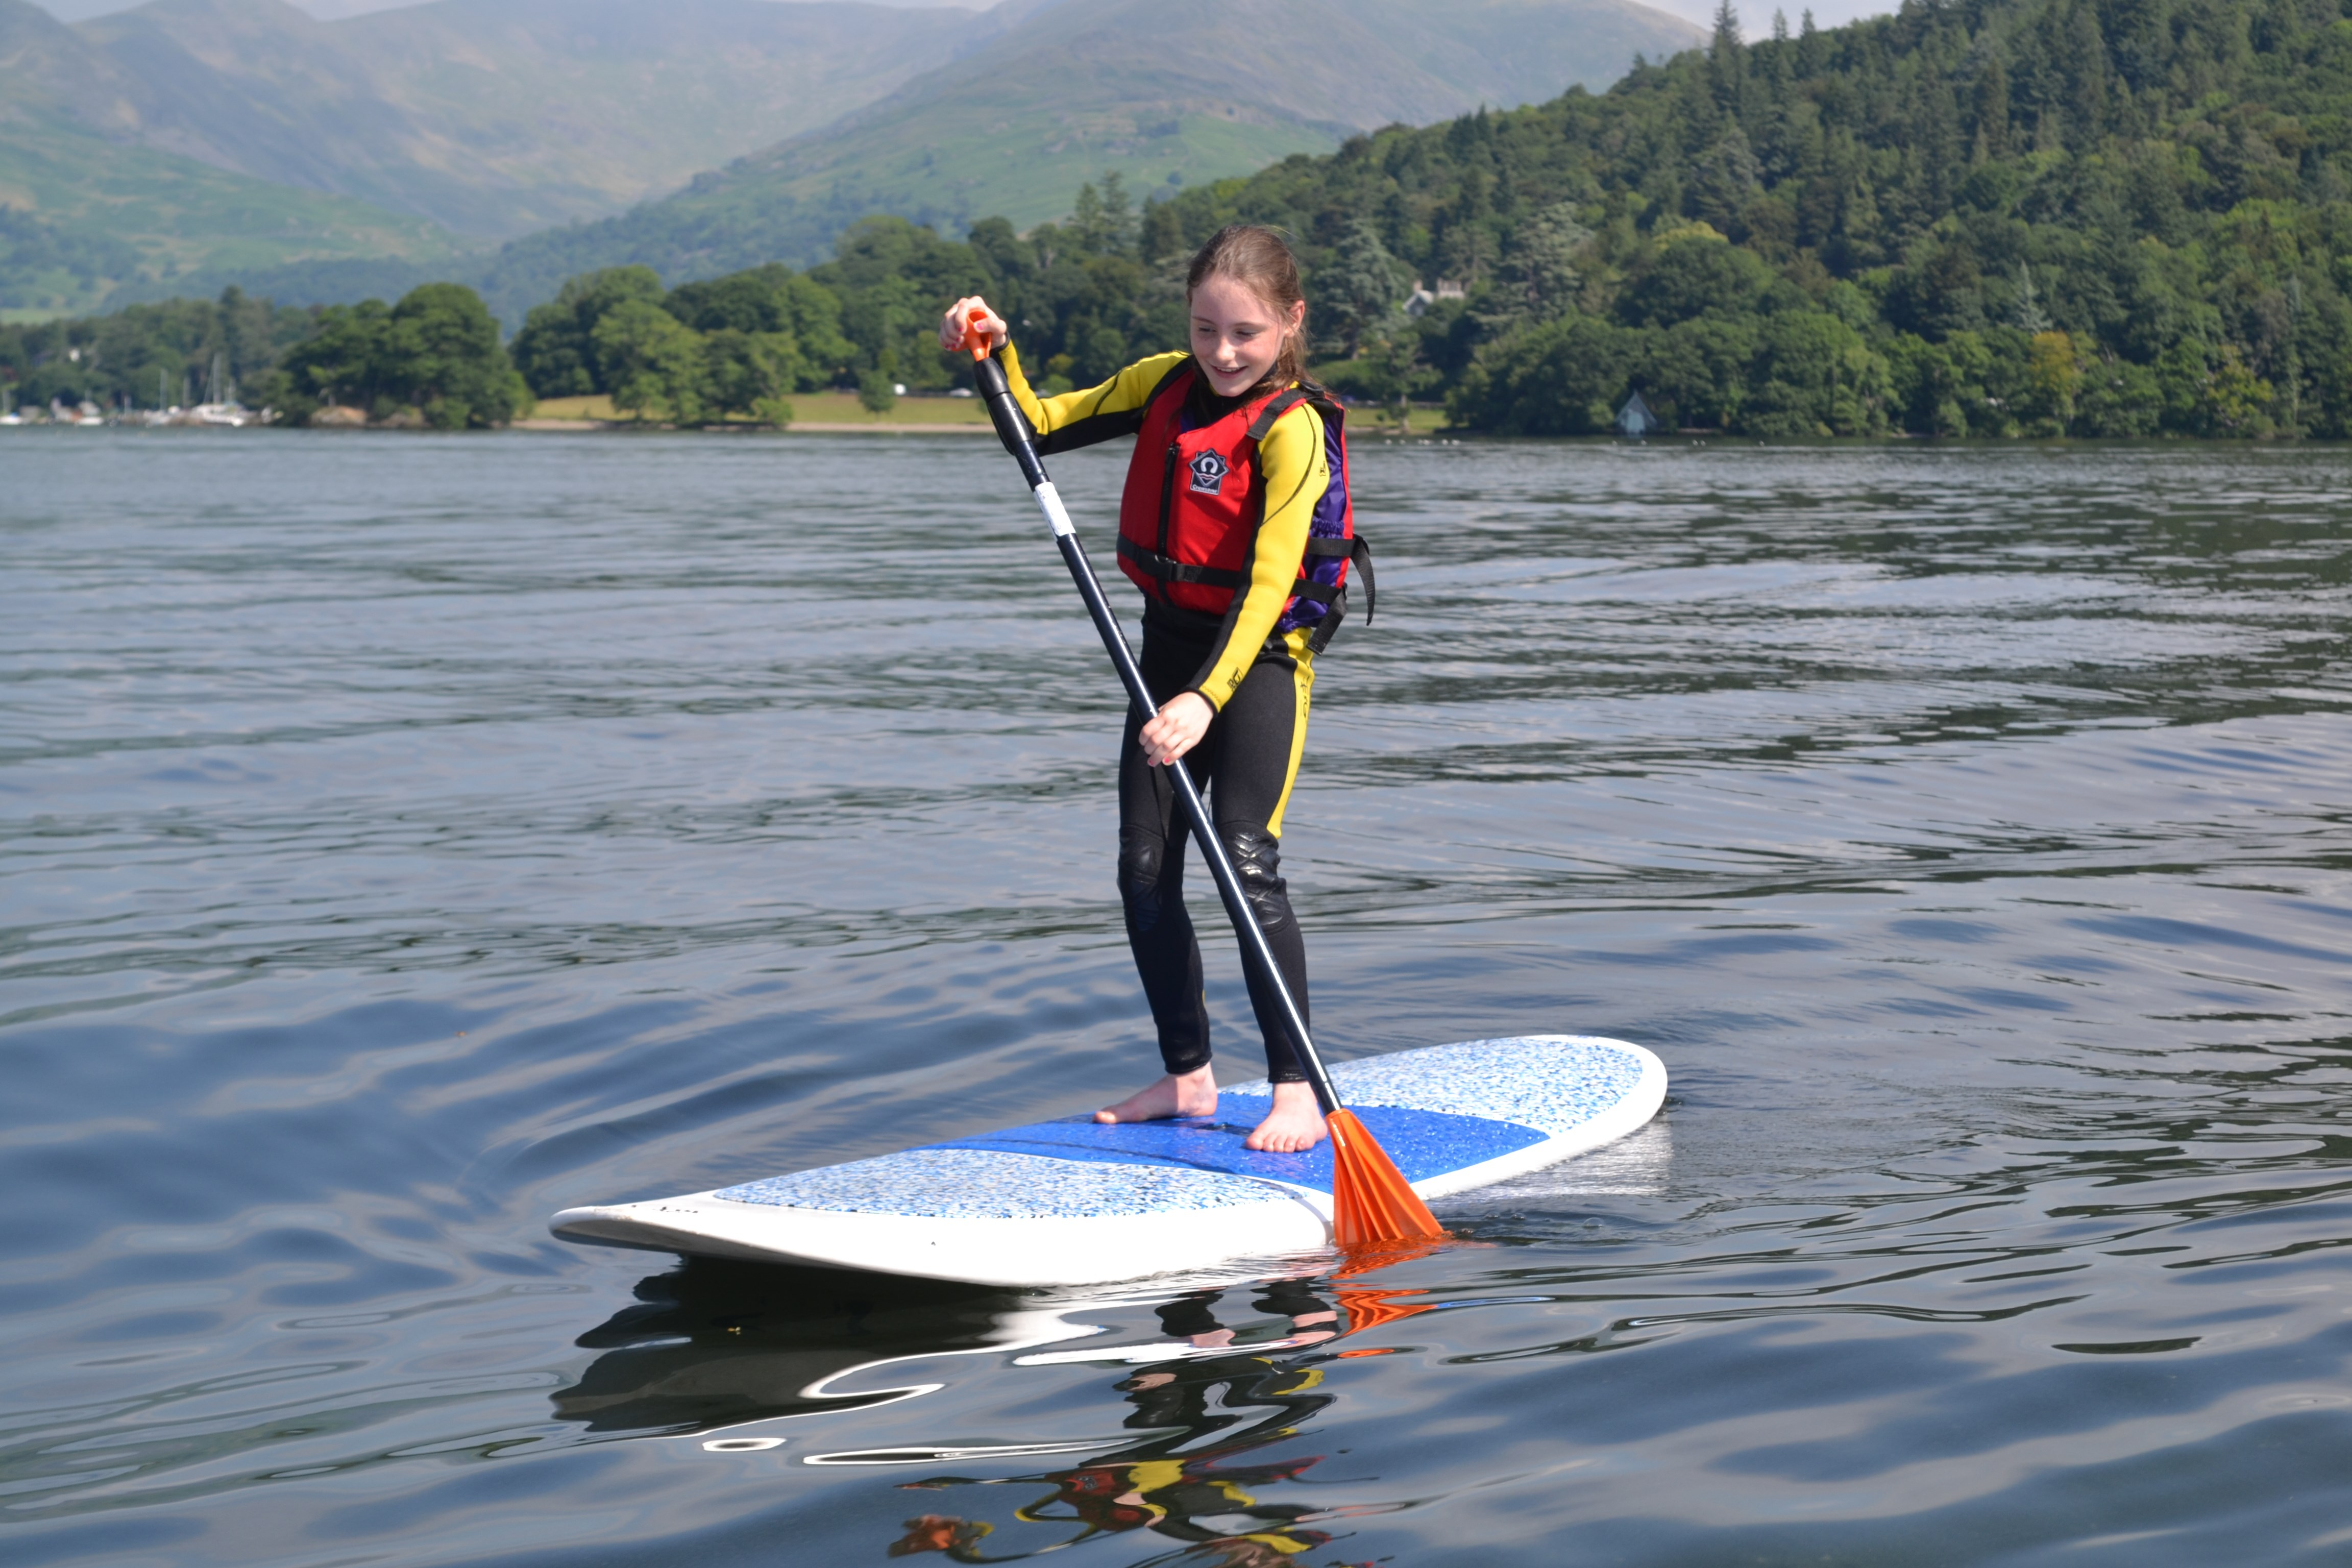 Learning to paddle board on Lake Windermere